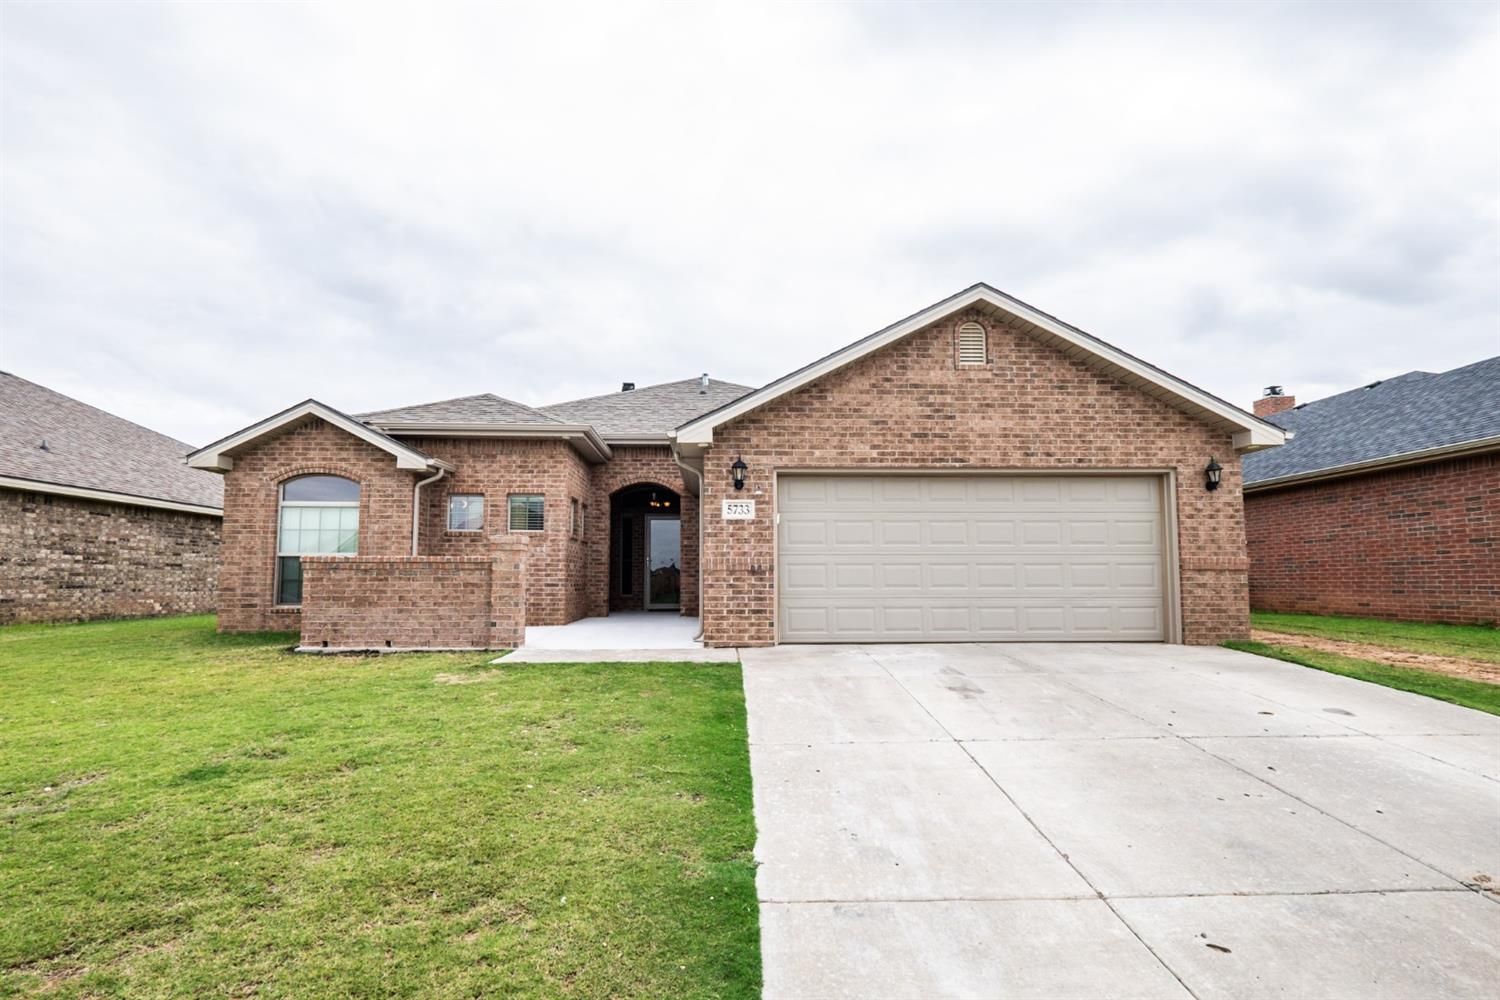 Beautiful home in sought after Cooper ISD!  This home is like brand new! New flooring throughout with new paint. Over sized backyard patio. Updated fixtures, Granite counter tops in the kitchen with many other updates! This one will not last long!